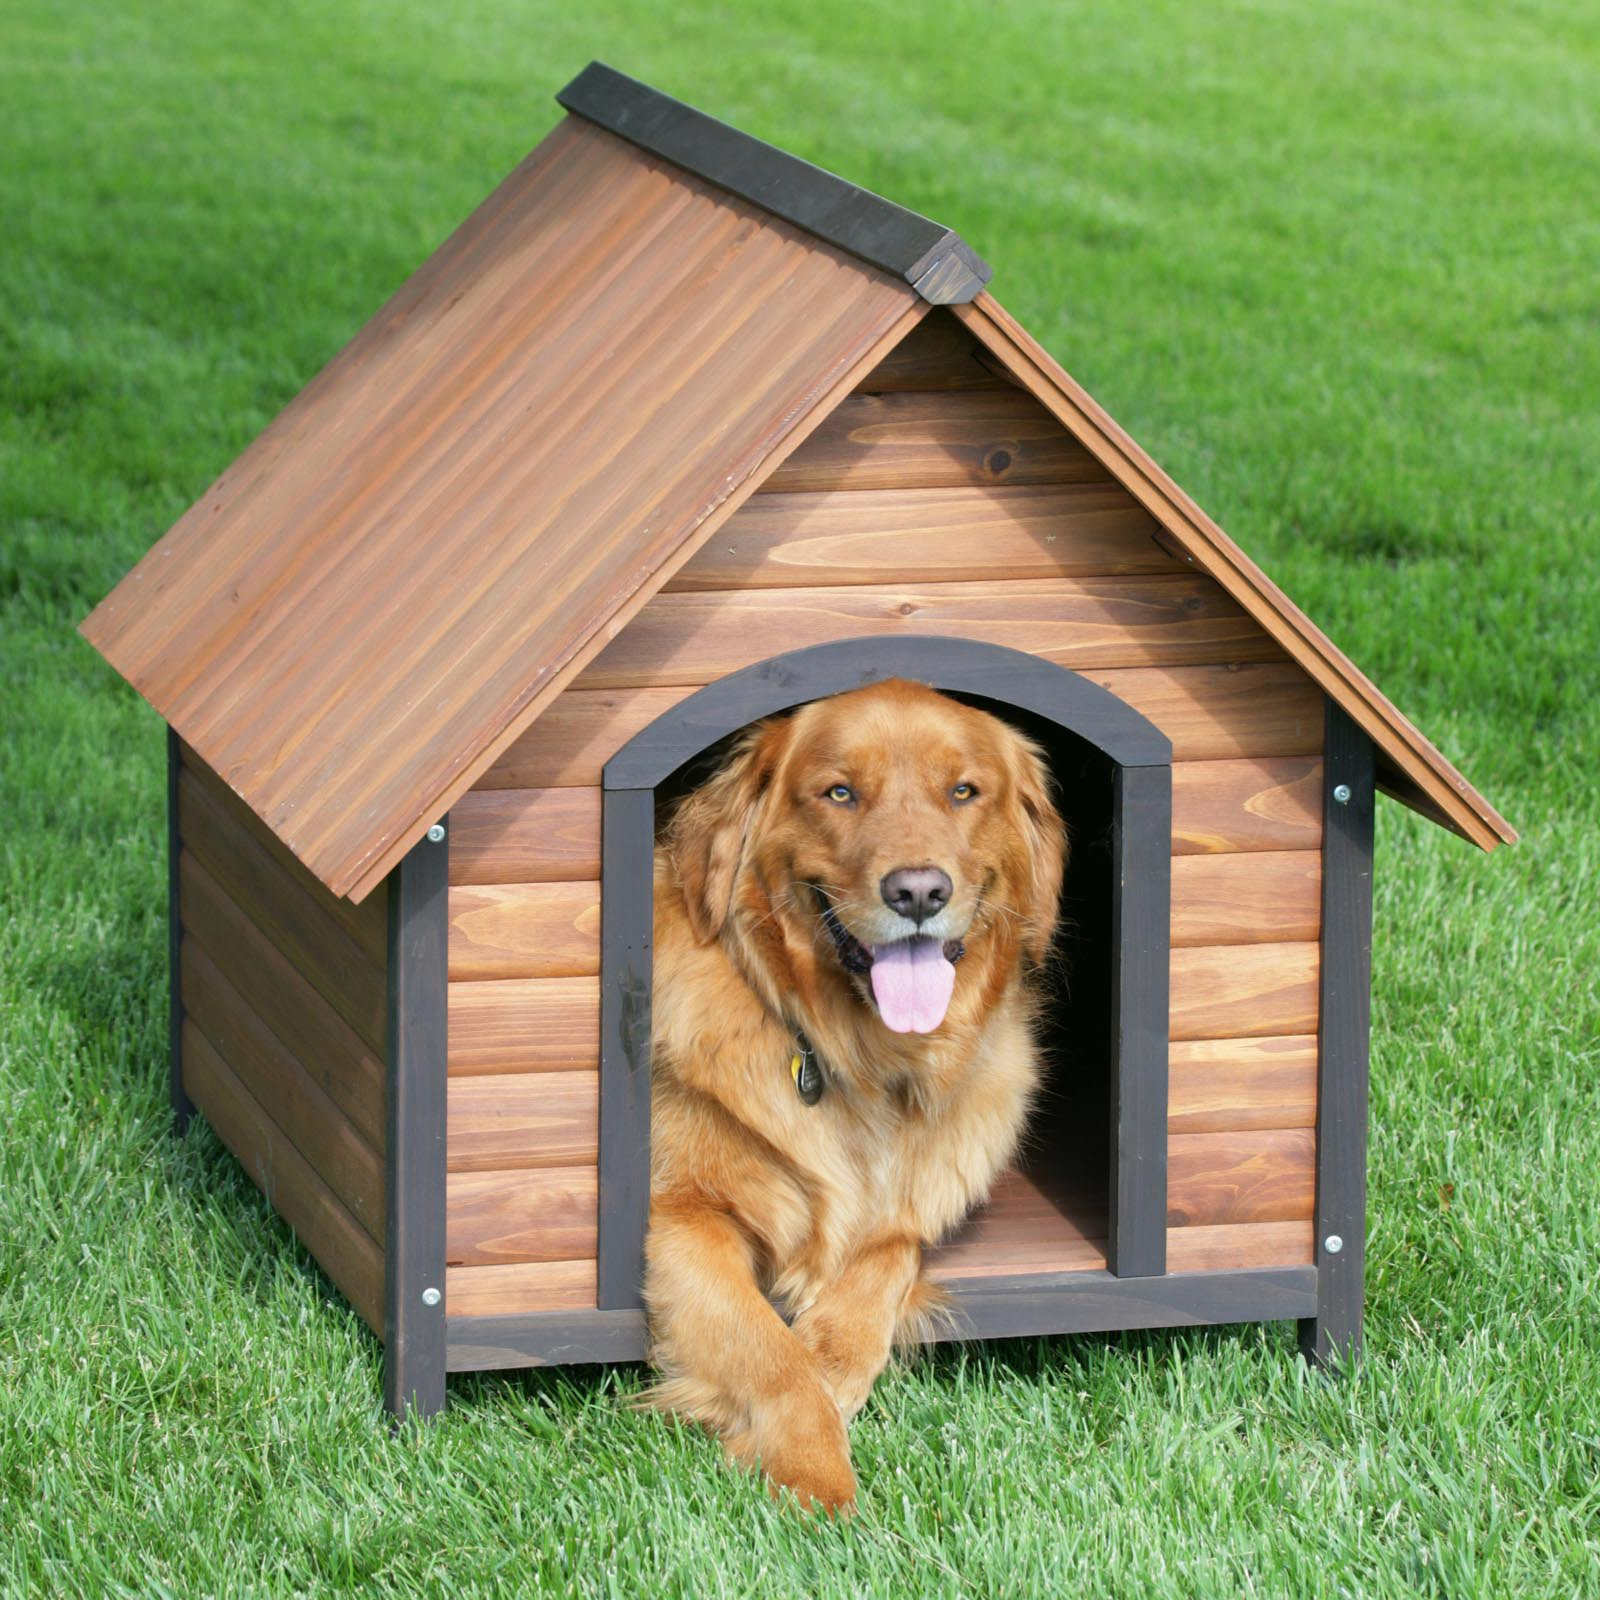 Dog House kindofpets